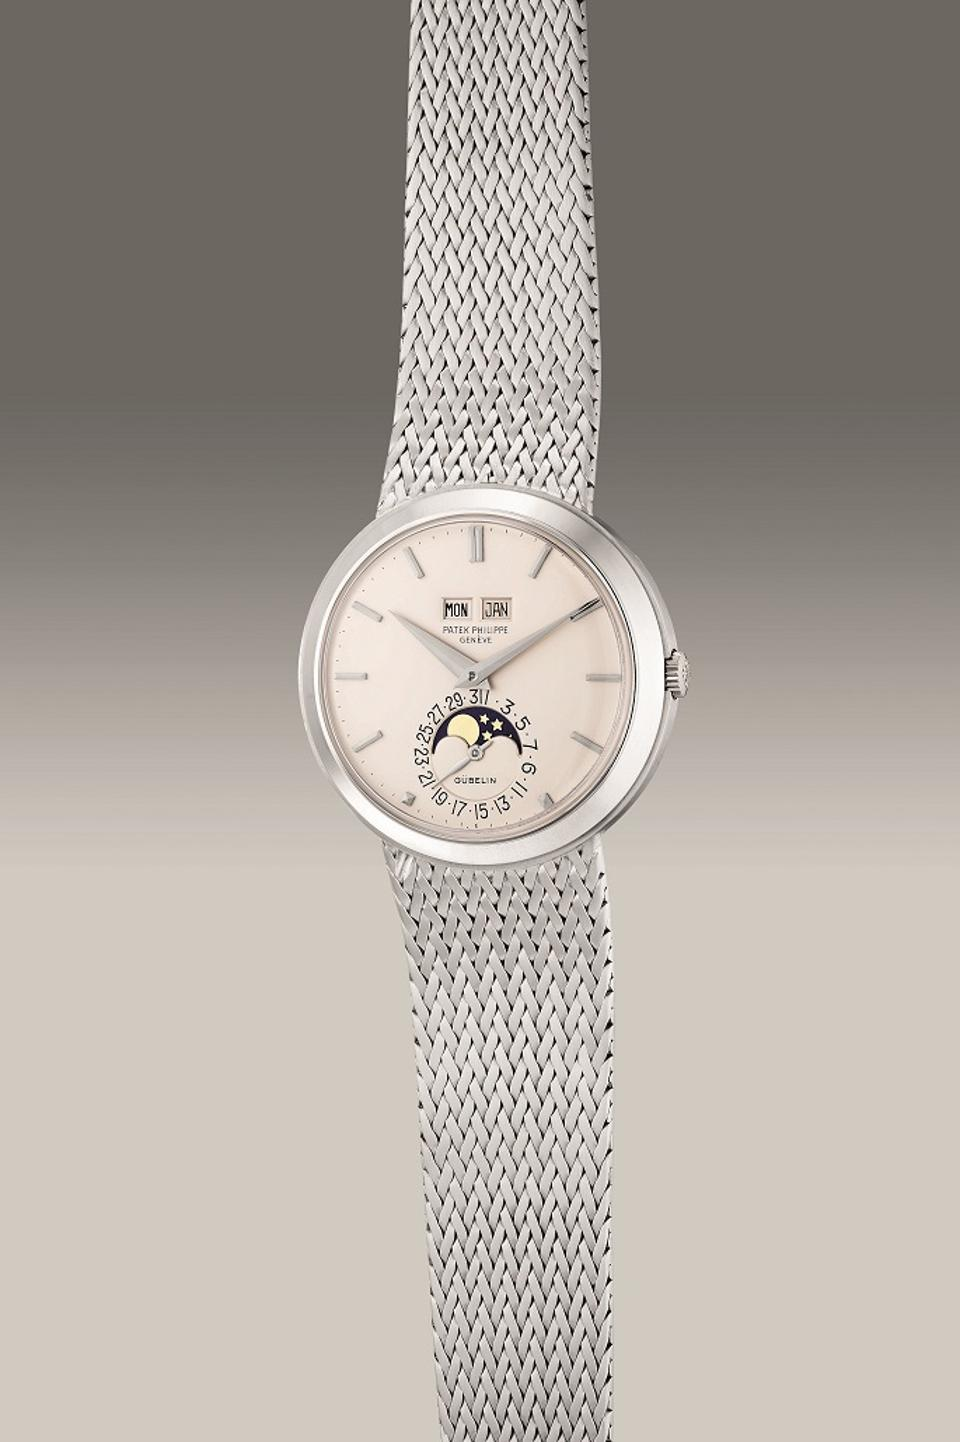 Patek Philippe Reference 3448/14, 1975, white gold perpetual calendar watch, moon phases